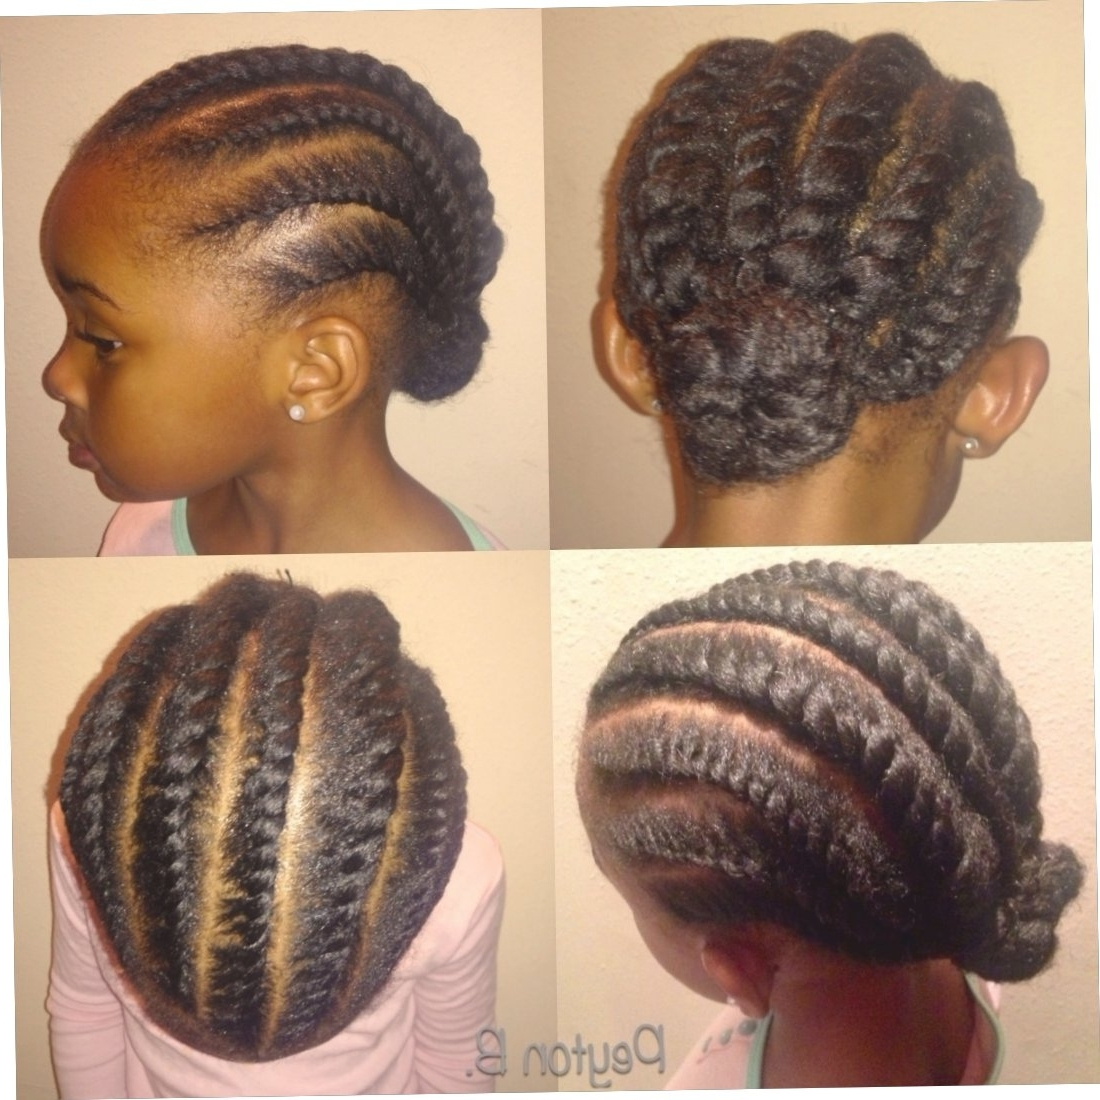 Simple Cornrow Hairstyles For Natural Hair  Image With Prime With Regard To Most Current Natural Cornrow Hairstyles (View 15 of 15)